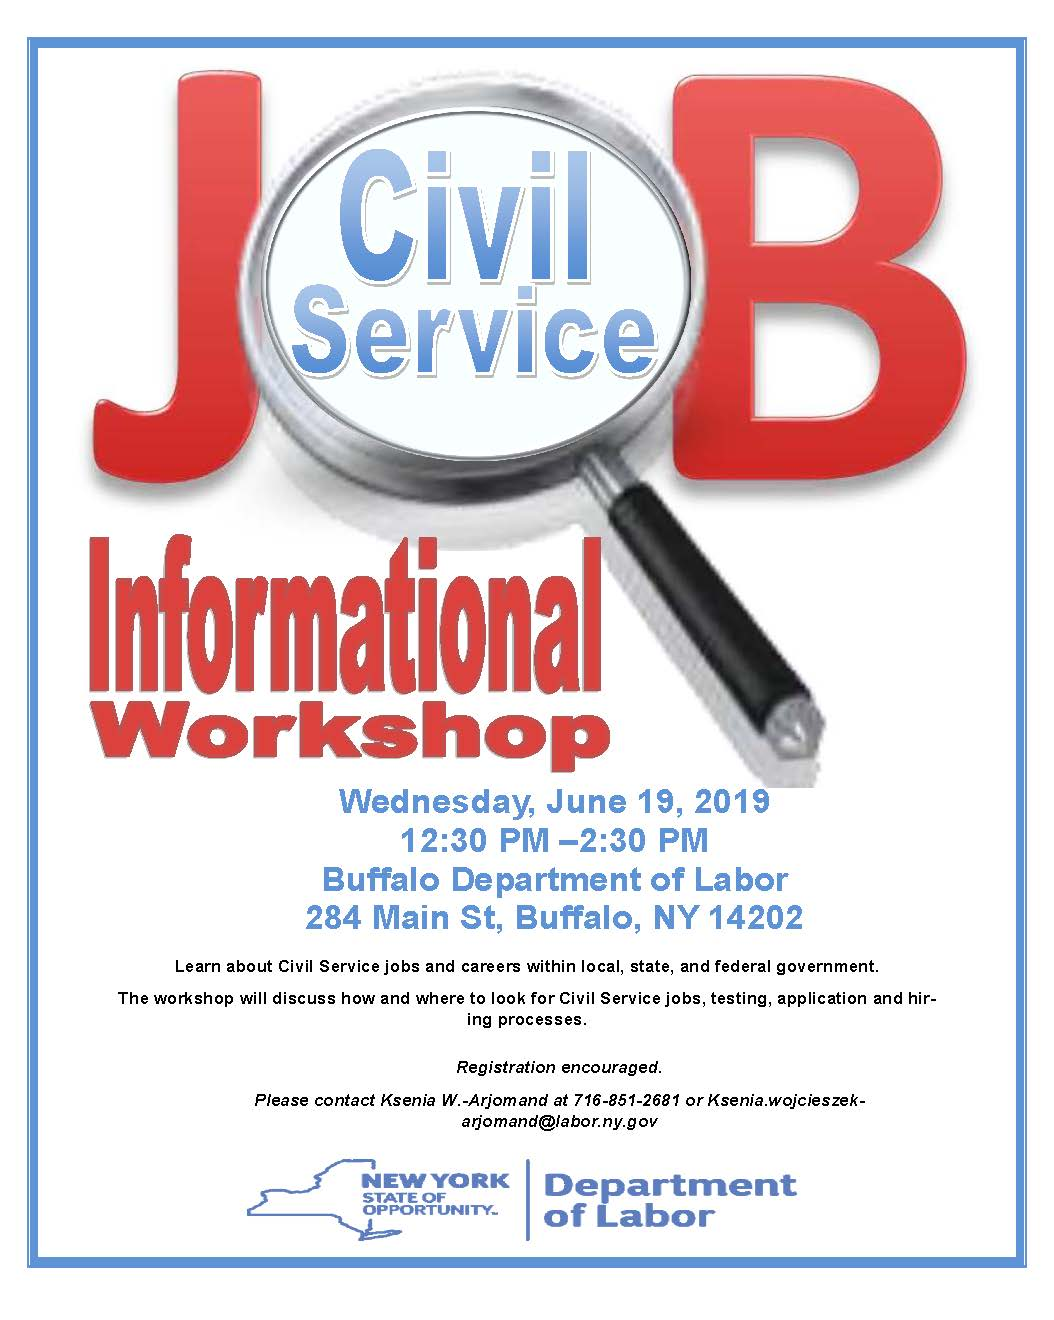 Civil Service Informational Workshop